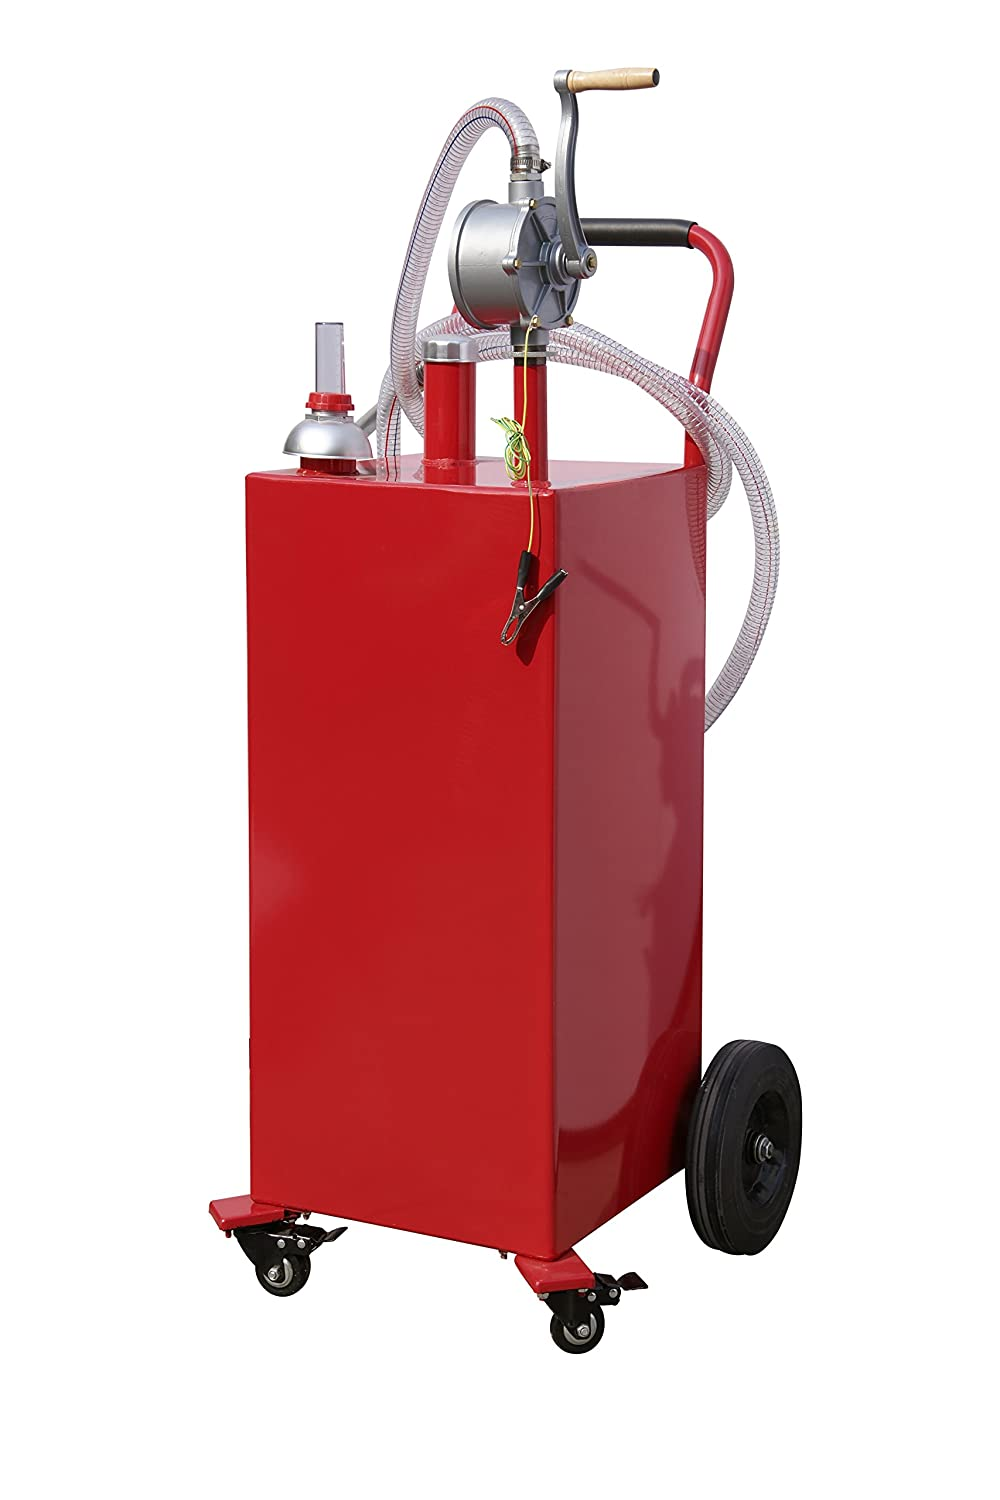 Tank Of Gas Too Much Prescription >> Arksen 35 Gallon Gas Caddy Fuel Tank Portable Storage Transfer Gasoline With Pump 35 Gallons Capacity Red